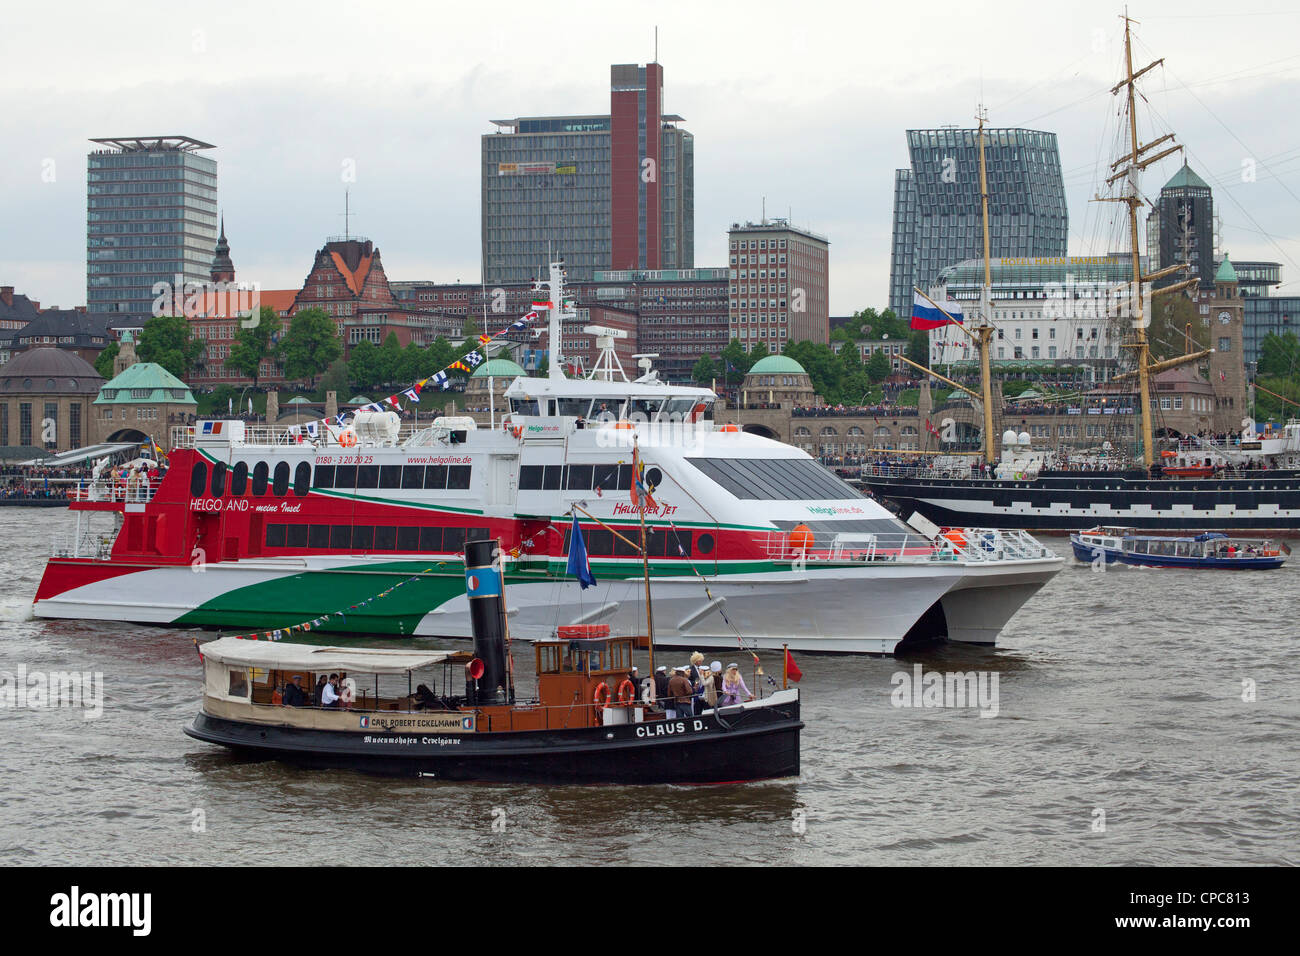 excursion boat and steamboat, entering port parade, Harbour Birthday, Hamburg, Germany Stock Photo